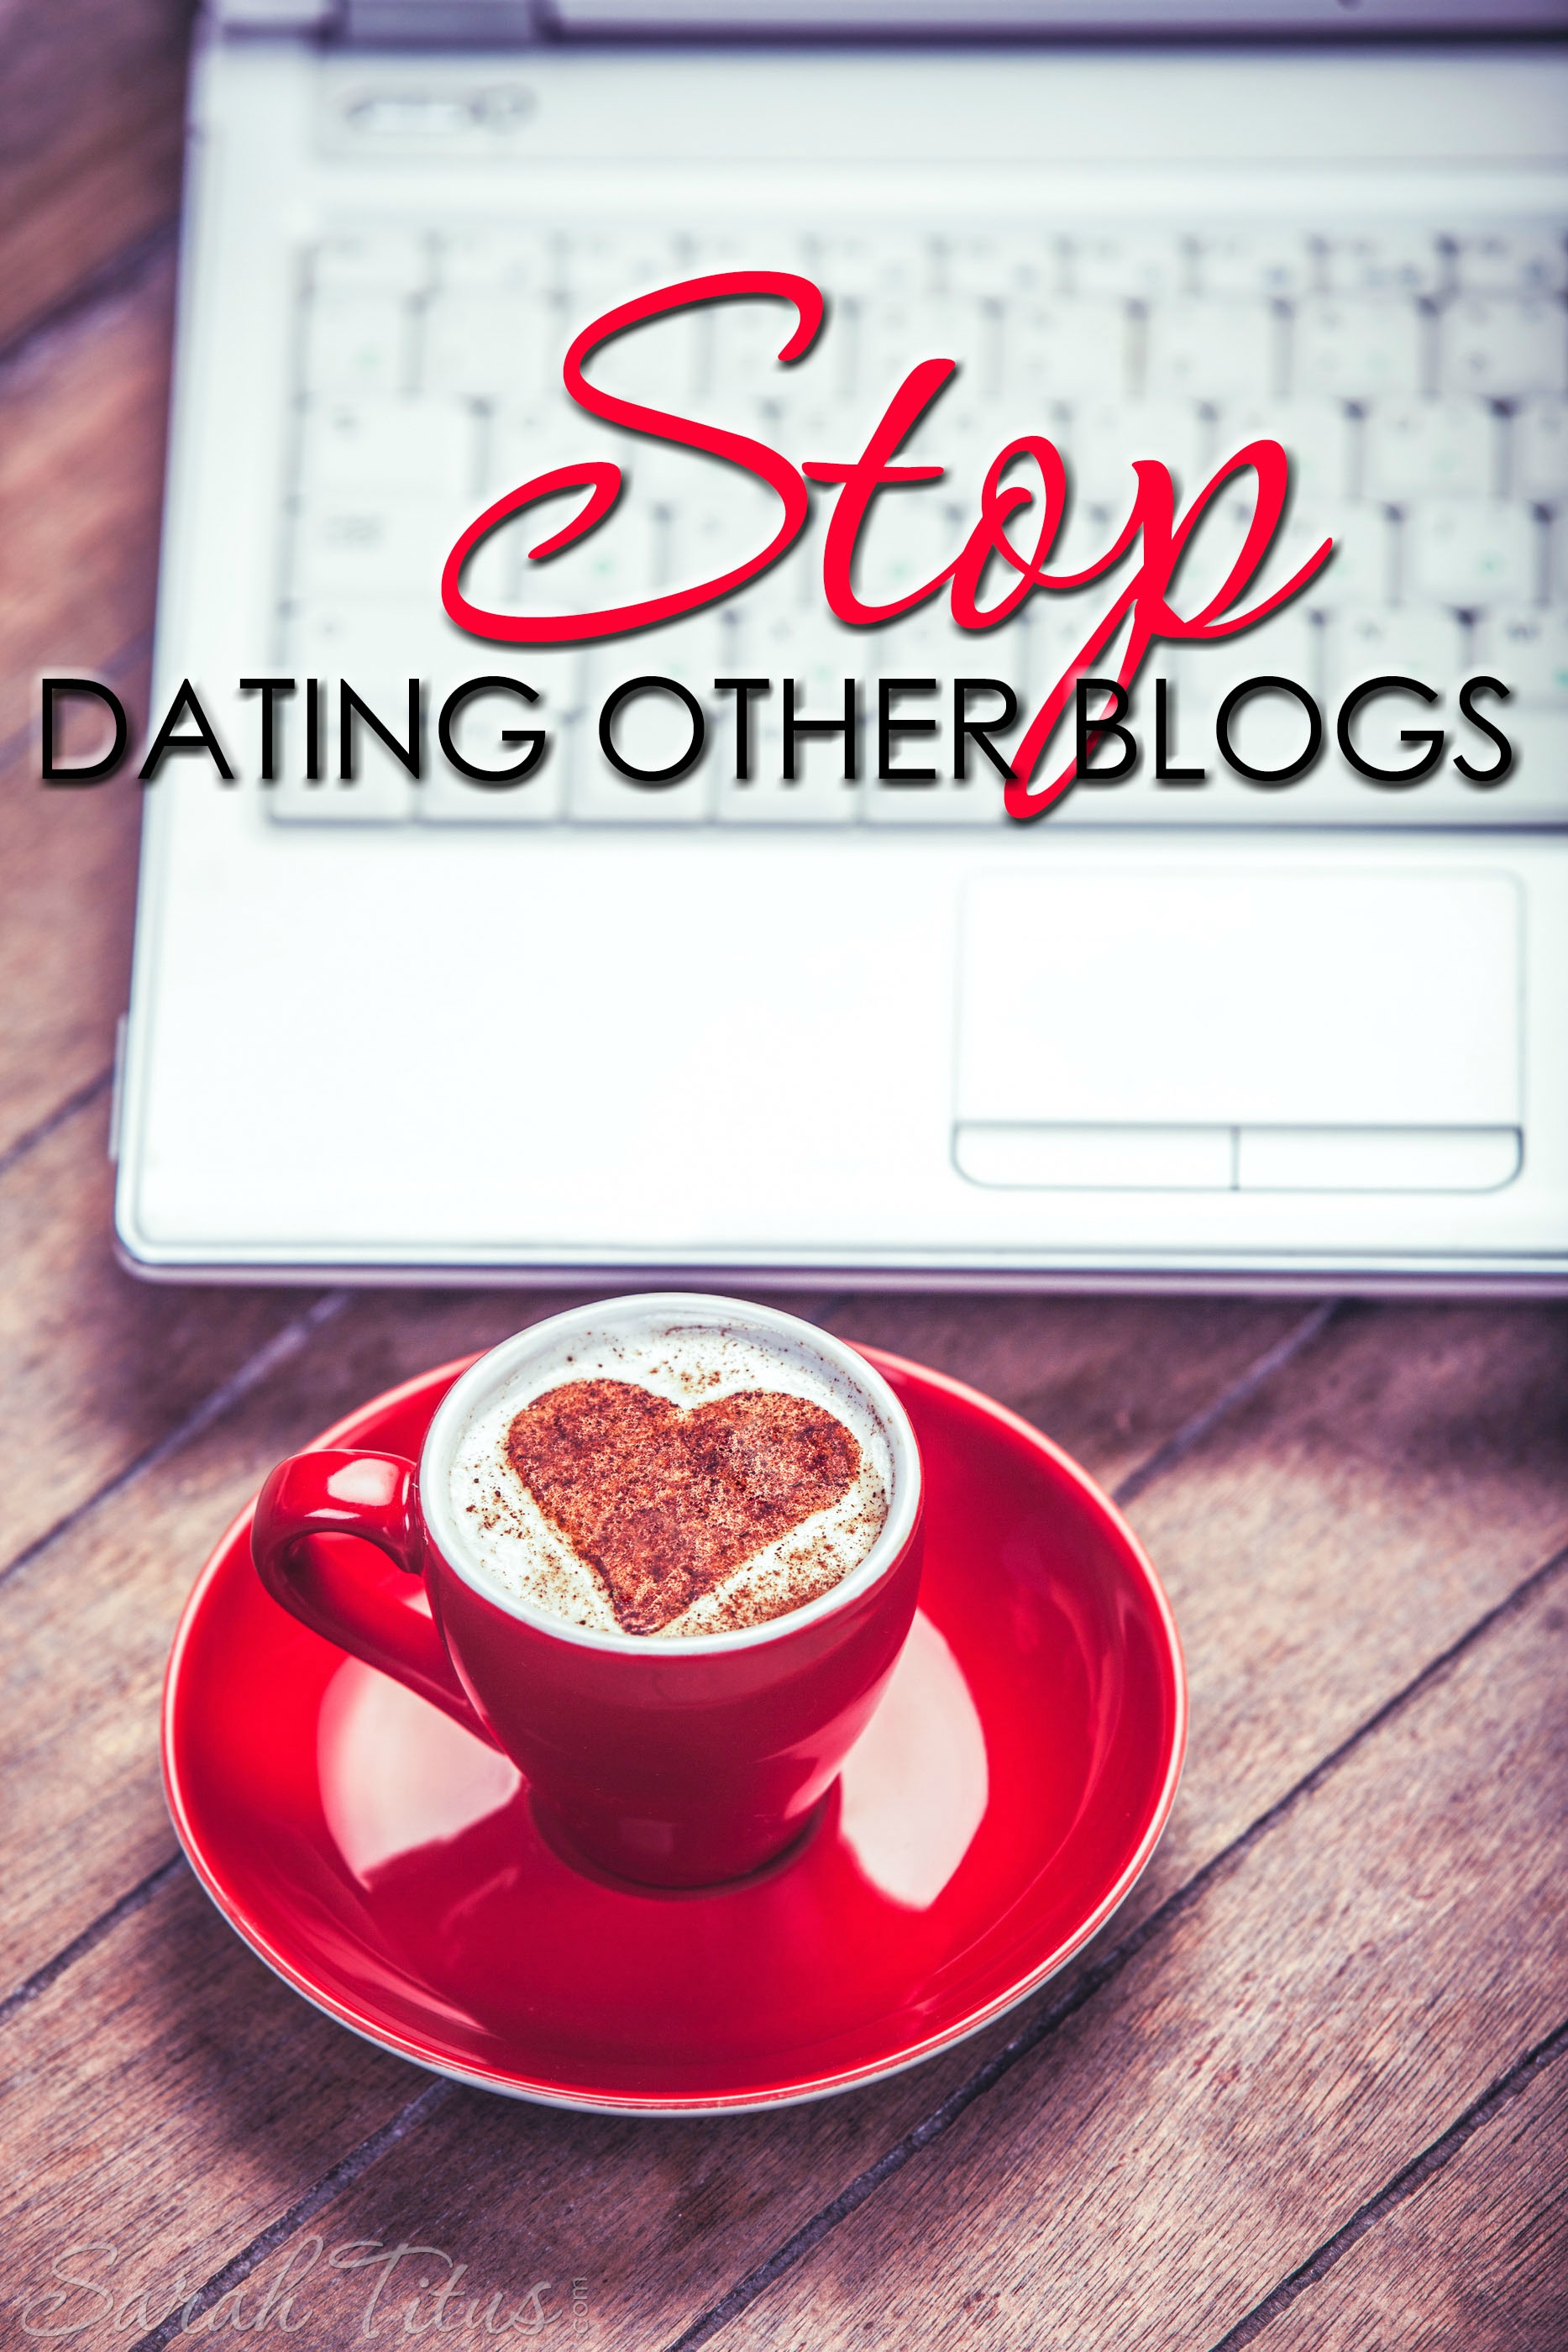 When to stop online dating